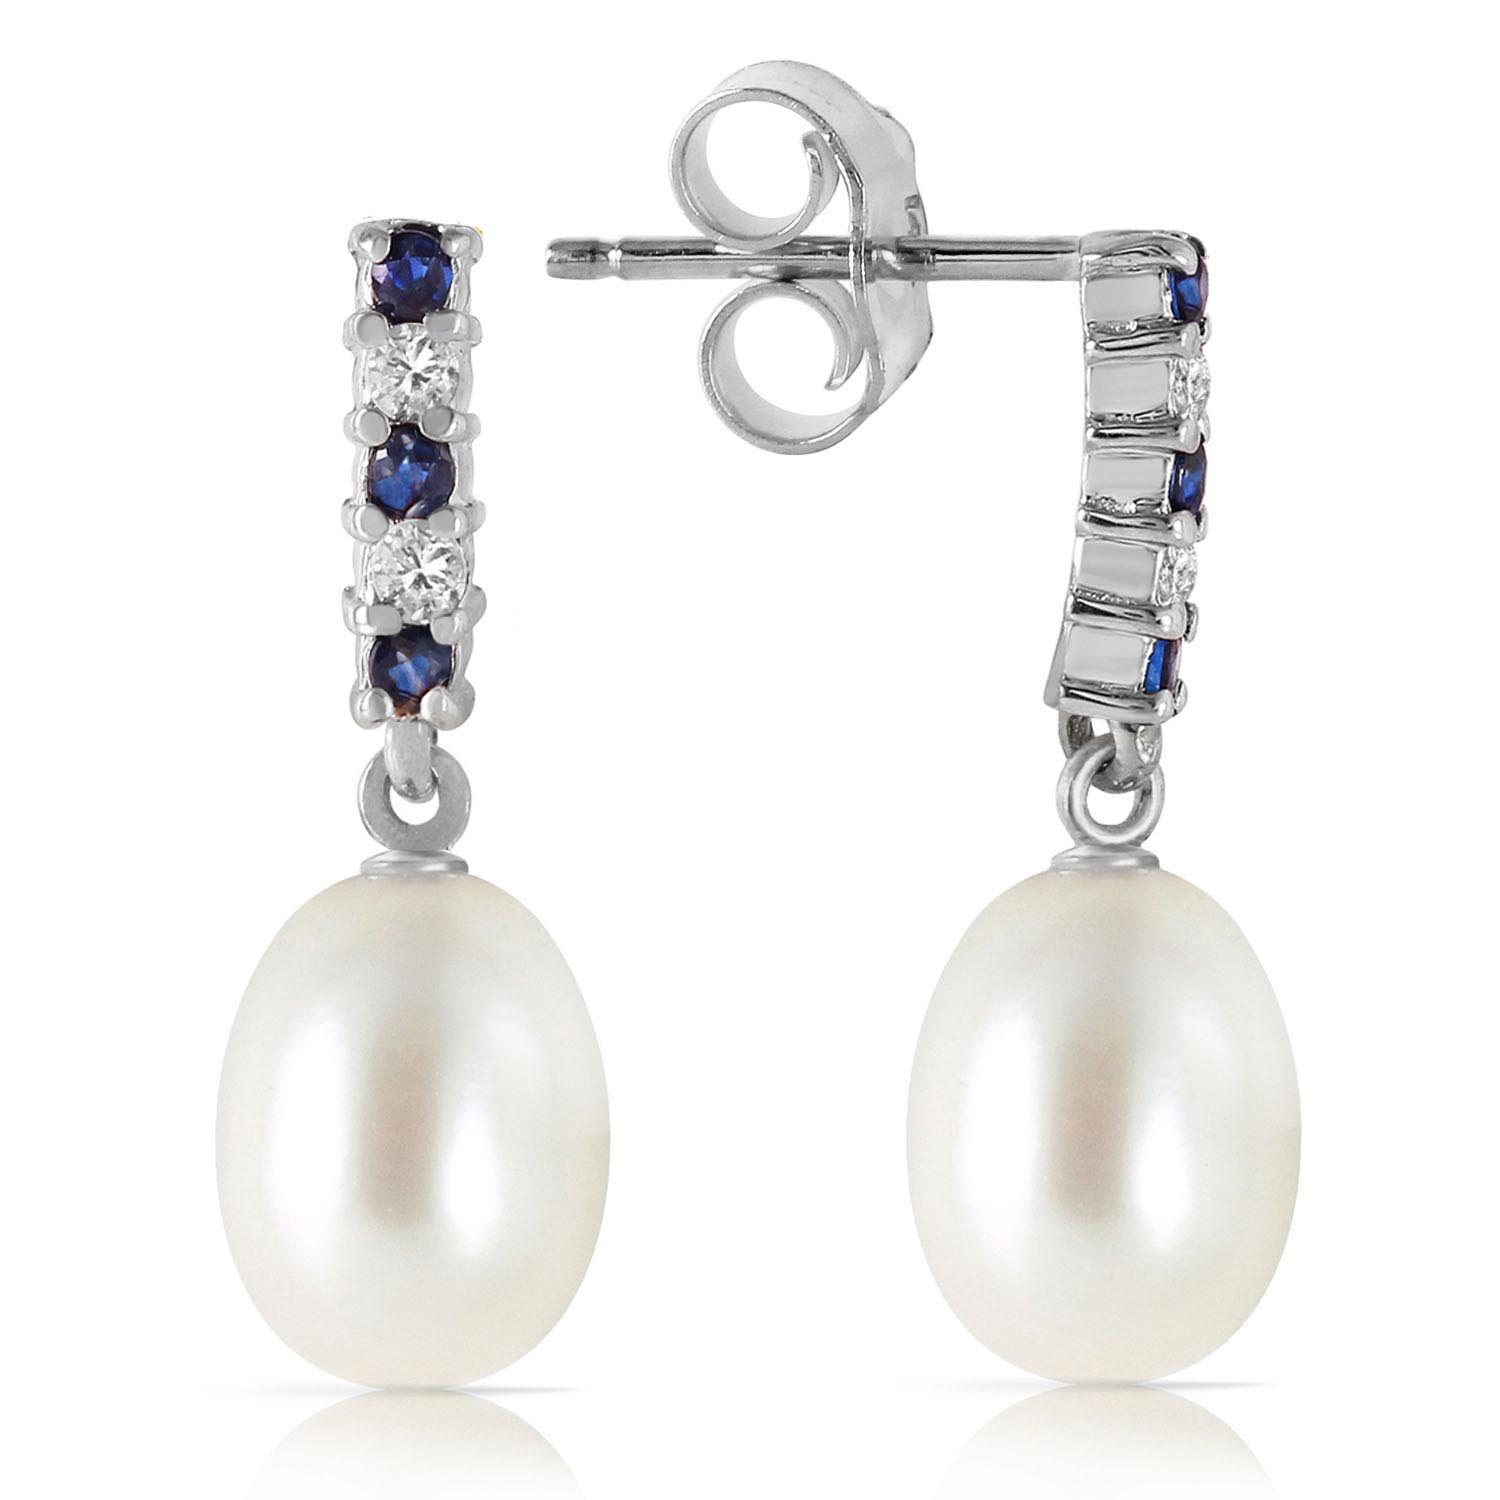 Pearl & Sapphire Stud Earrings in 9ct White Gold